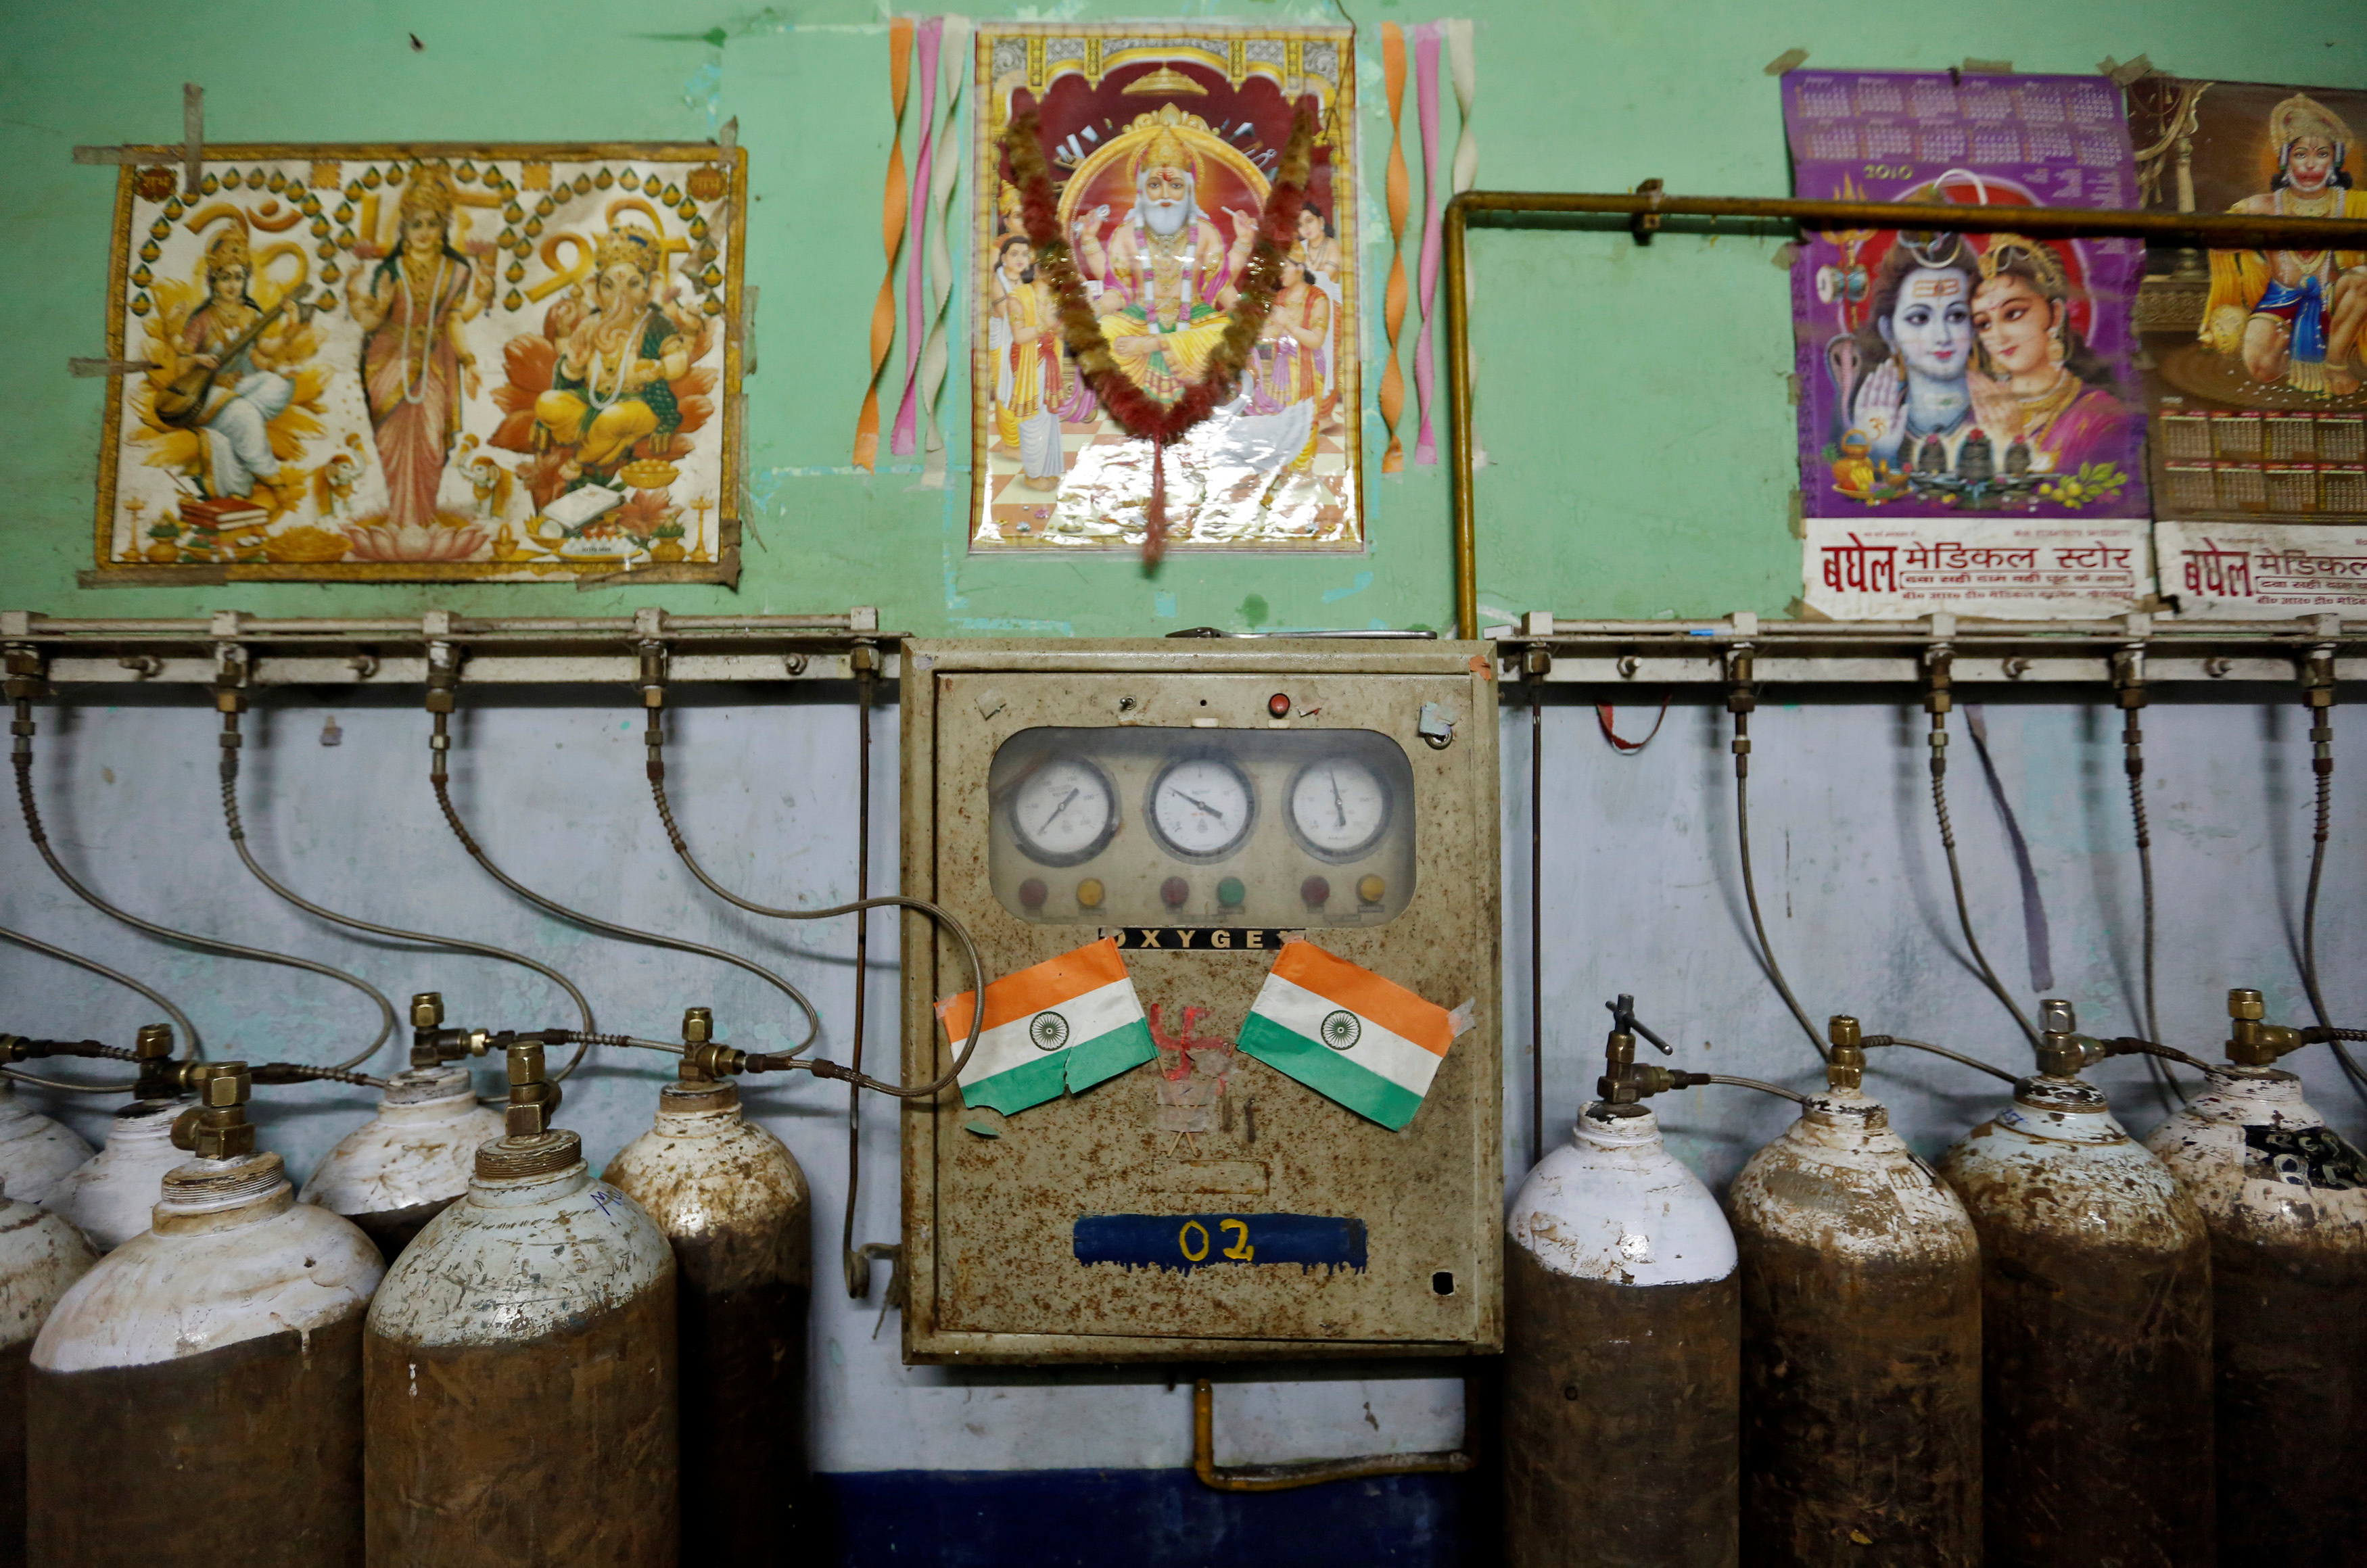 A room containing oxygen tanks is seen in the Baba Raghav Das hospital in Gorakhpur district, India on Aug. 13, 2017.